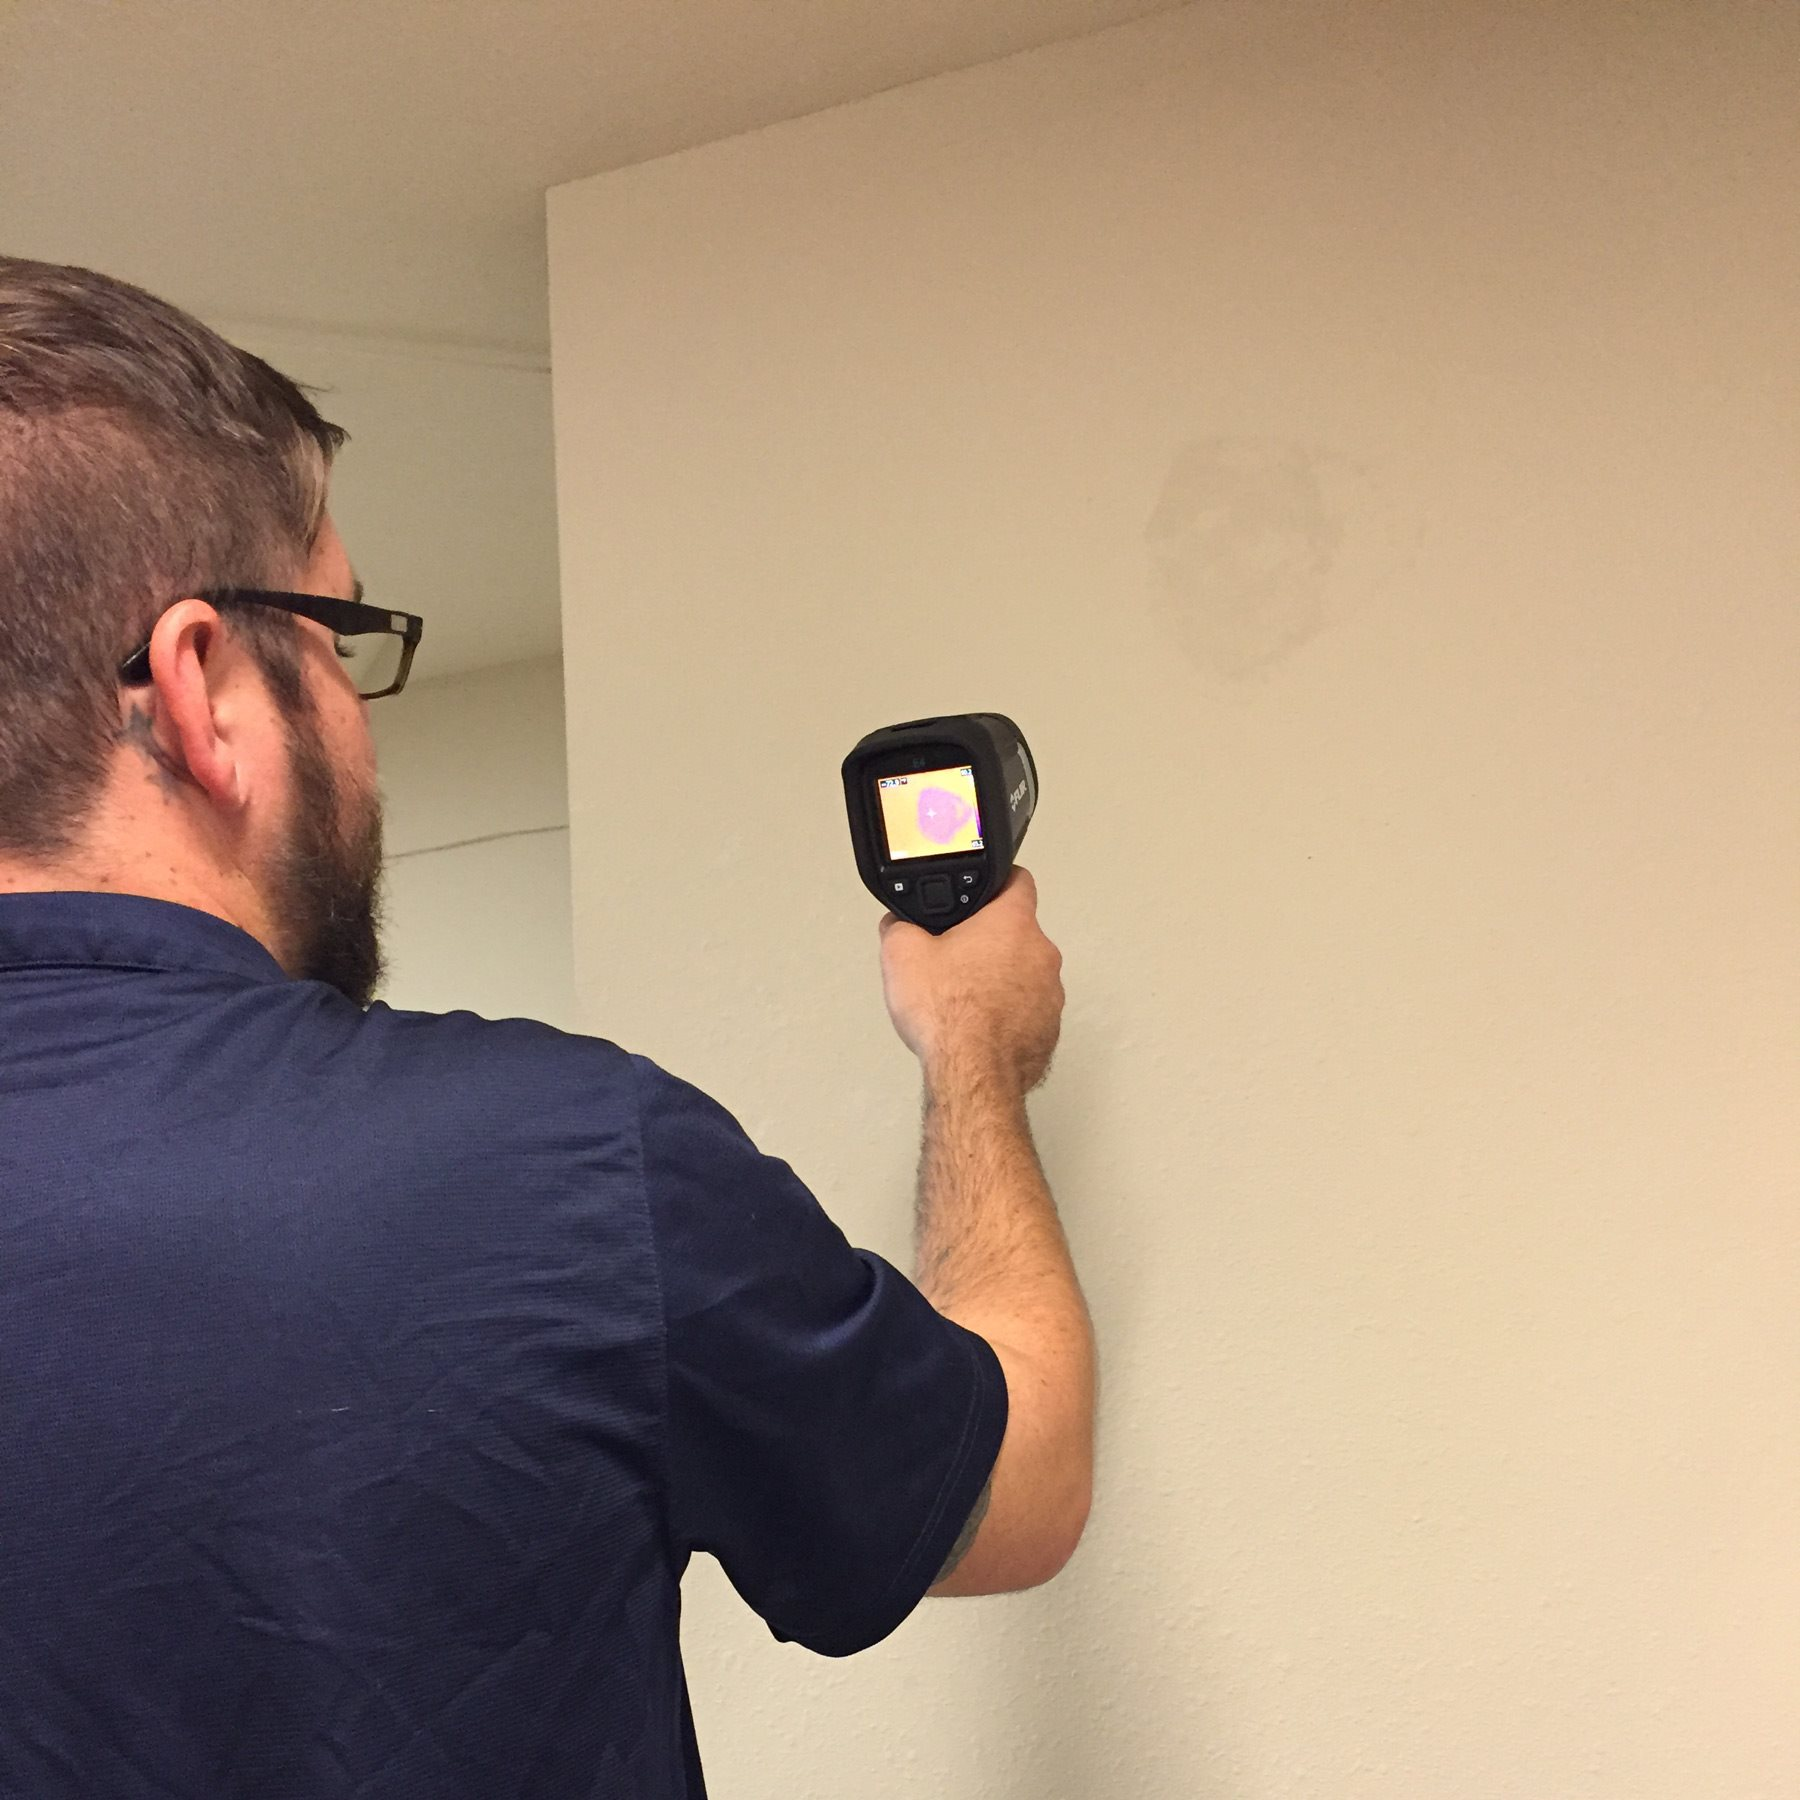 ACW technician scanning for mold